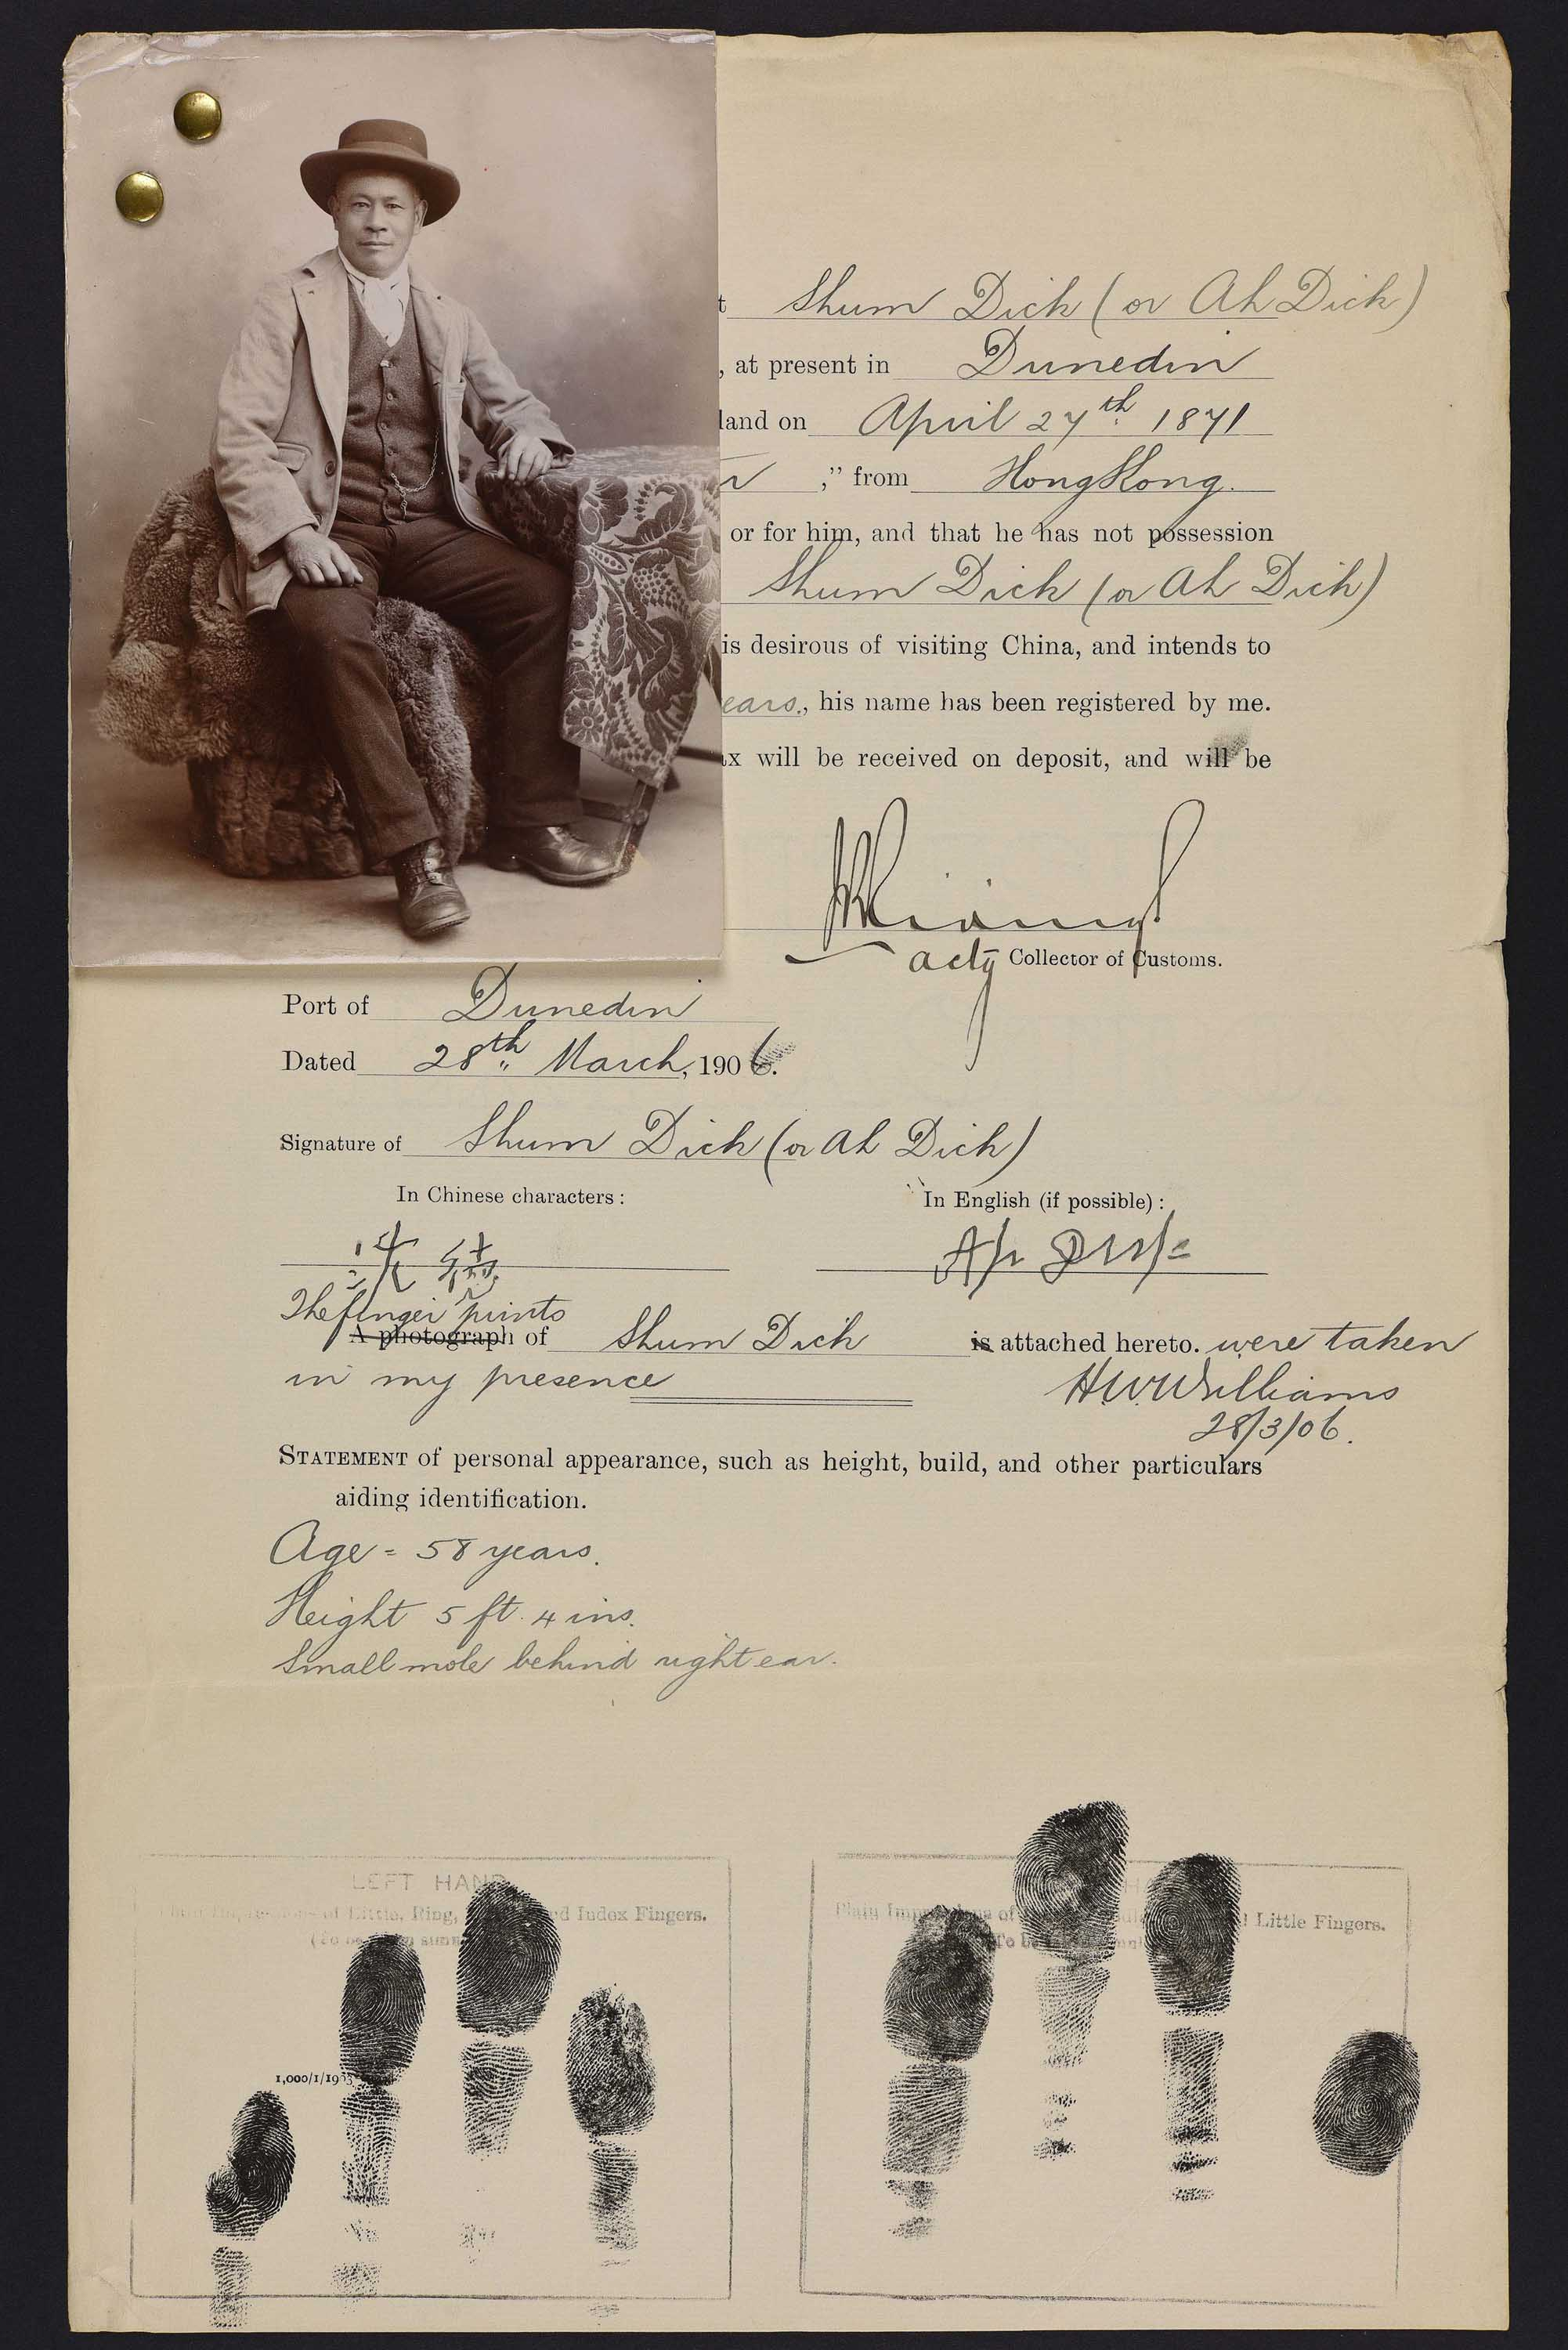 Sepia photo of a seated Chinese man attached to his immigration record